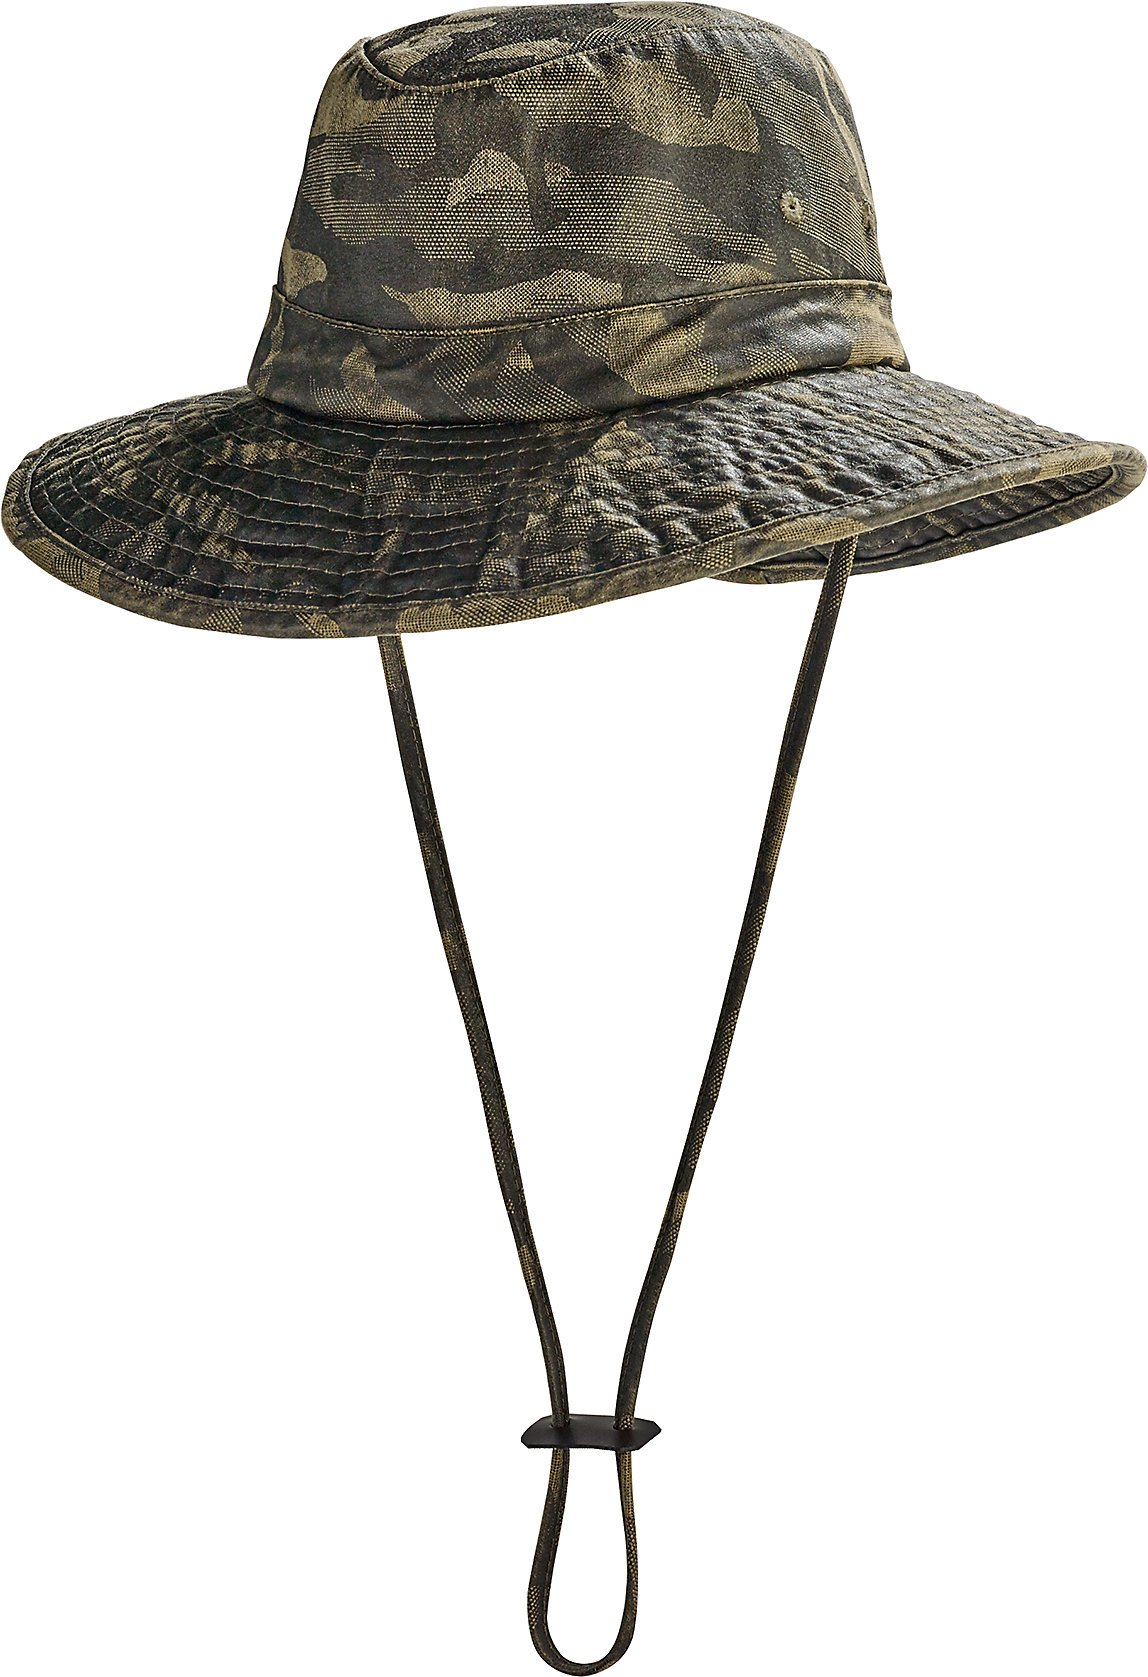 Coolibar UPF 50+ Kids' Outback Boonie Sun Hat - Sun Protective (Small/Medium- Camo)